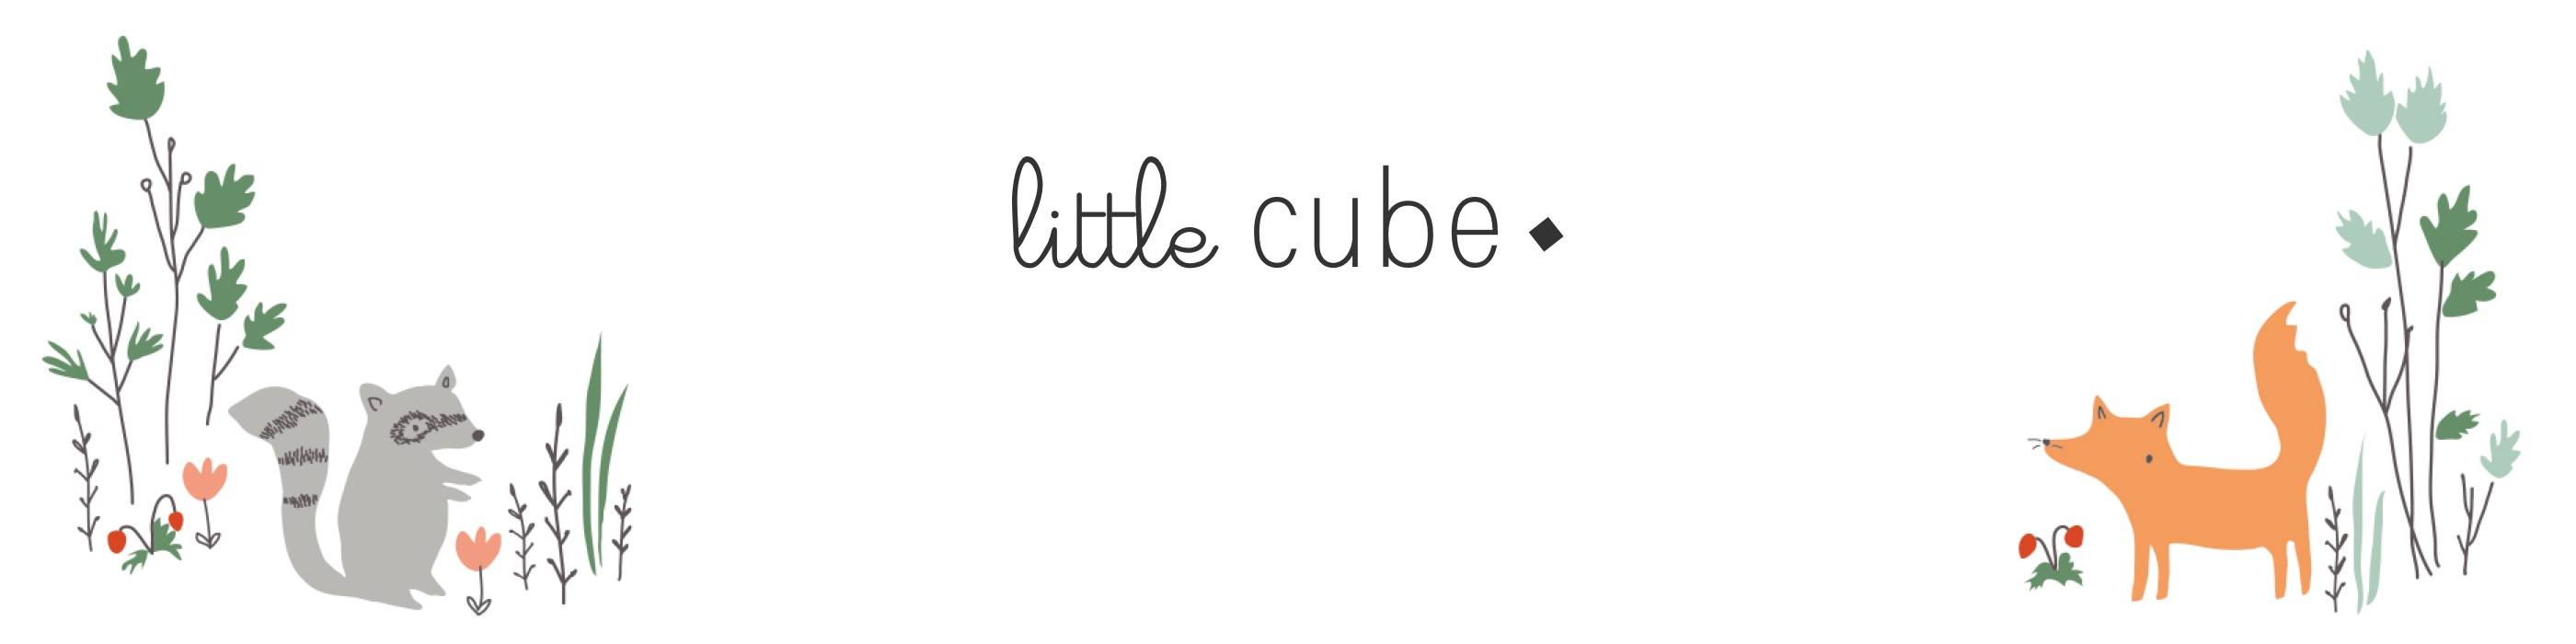 Little Cube for Paperless Post